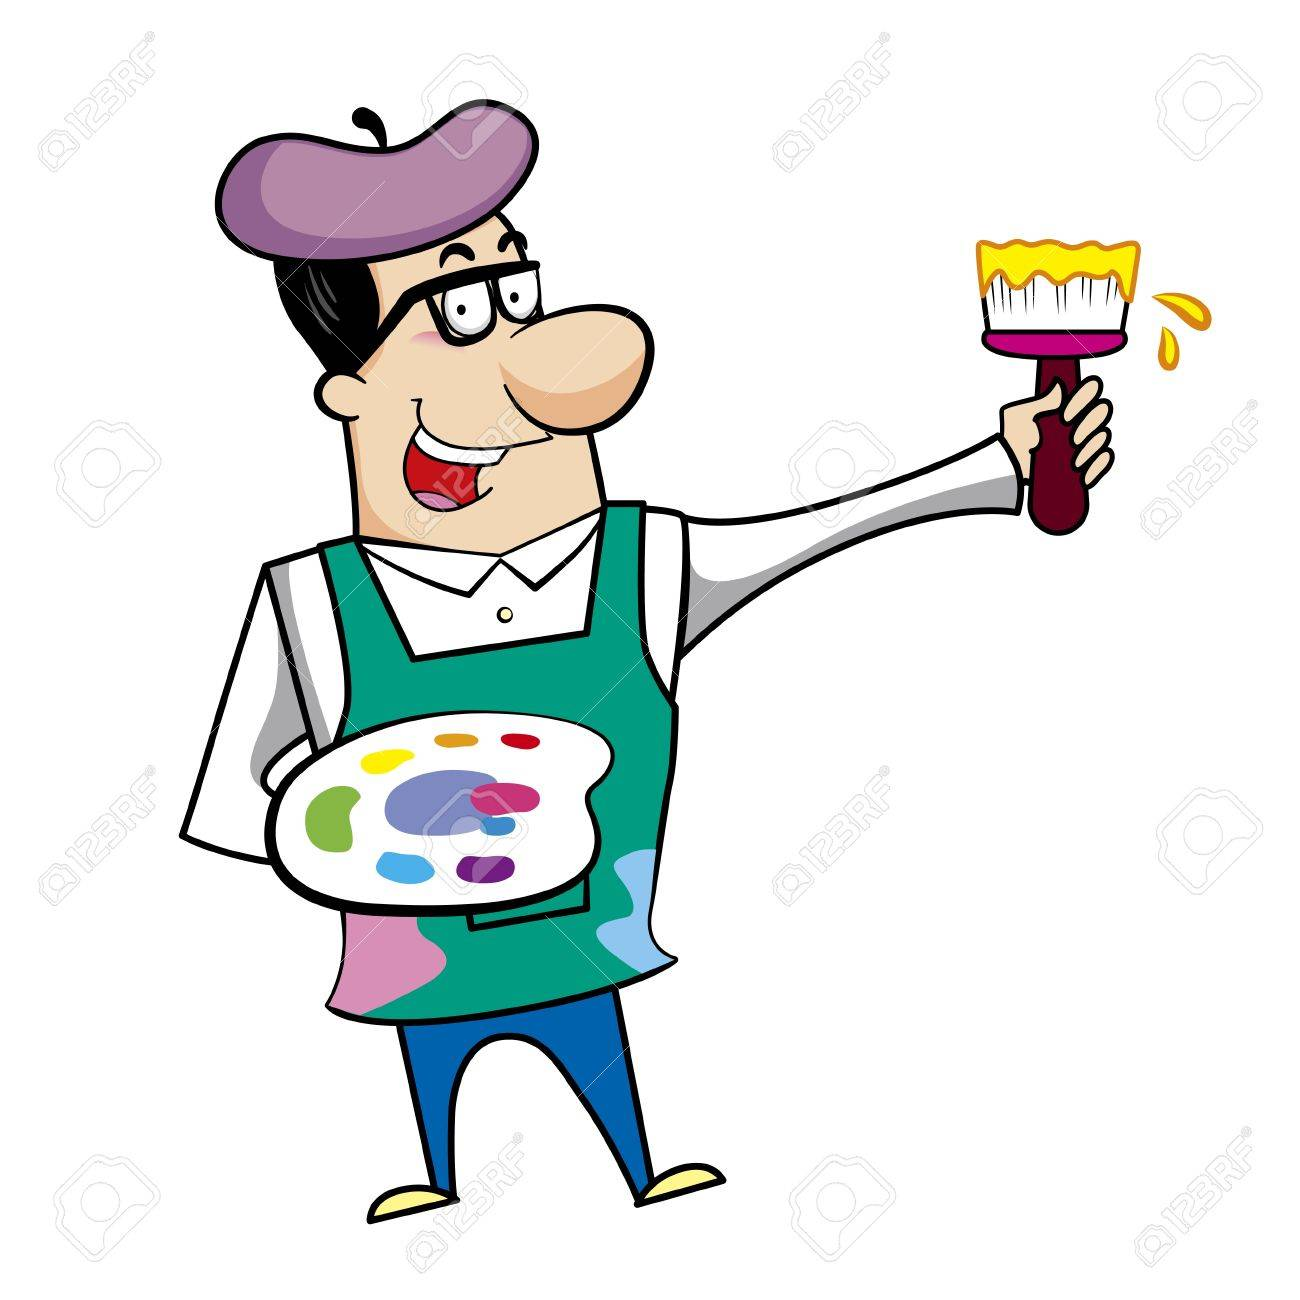 Cartoon artist with paintbrush and paint palette vector illustration. Stock Vector - 18376534